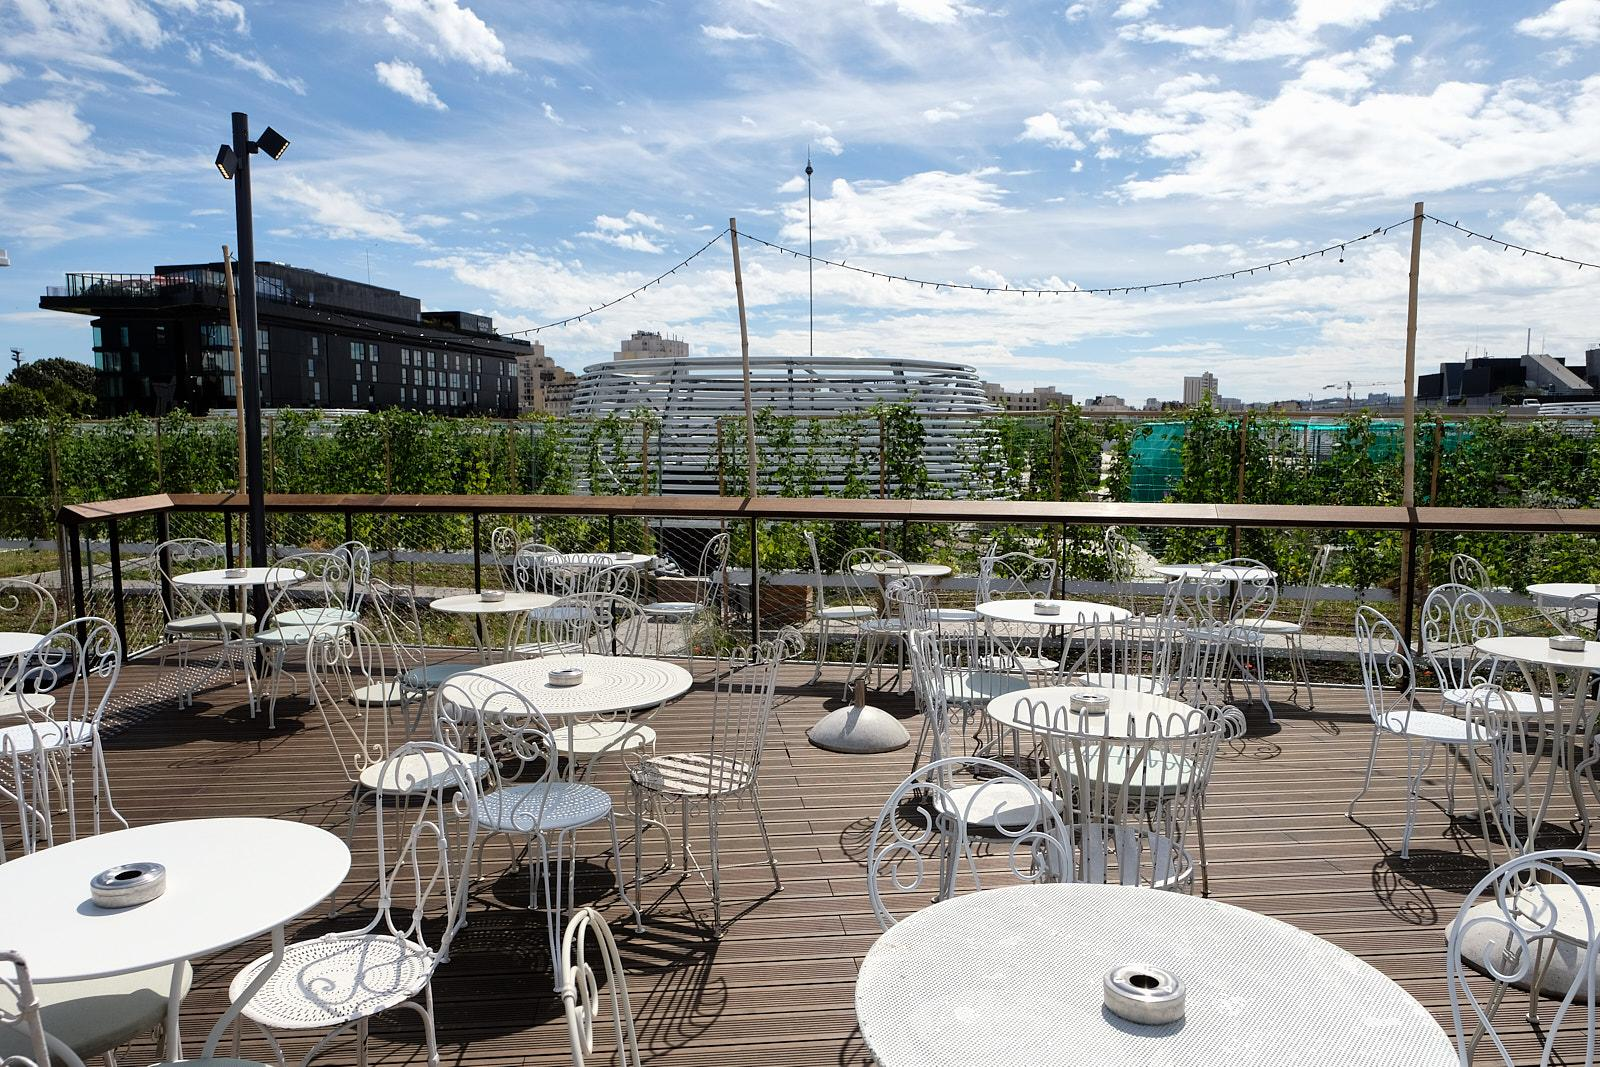 View of the roof farm from Le Perchoir, a restaurant that uses all the products that are grown only meters away.